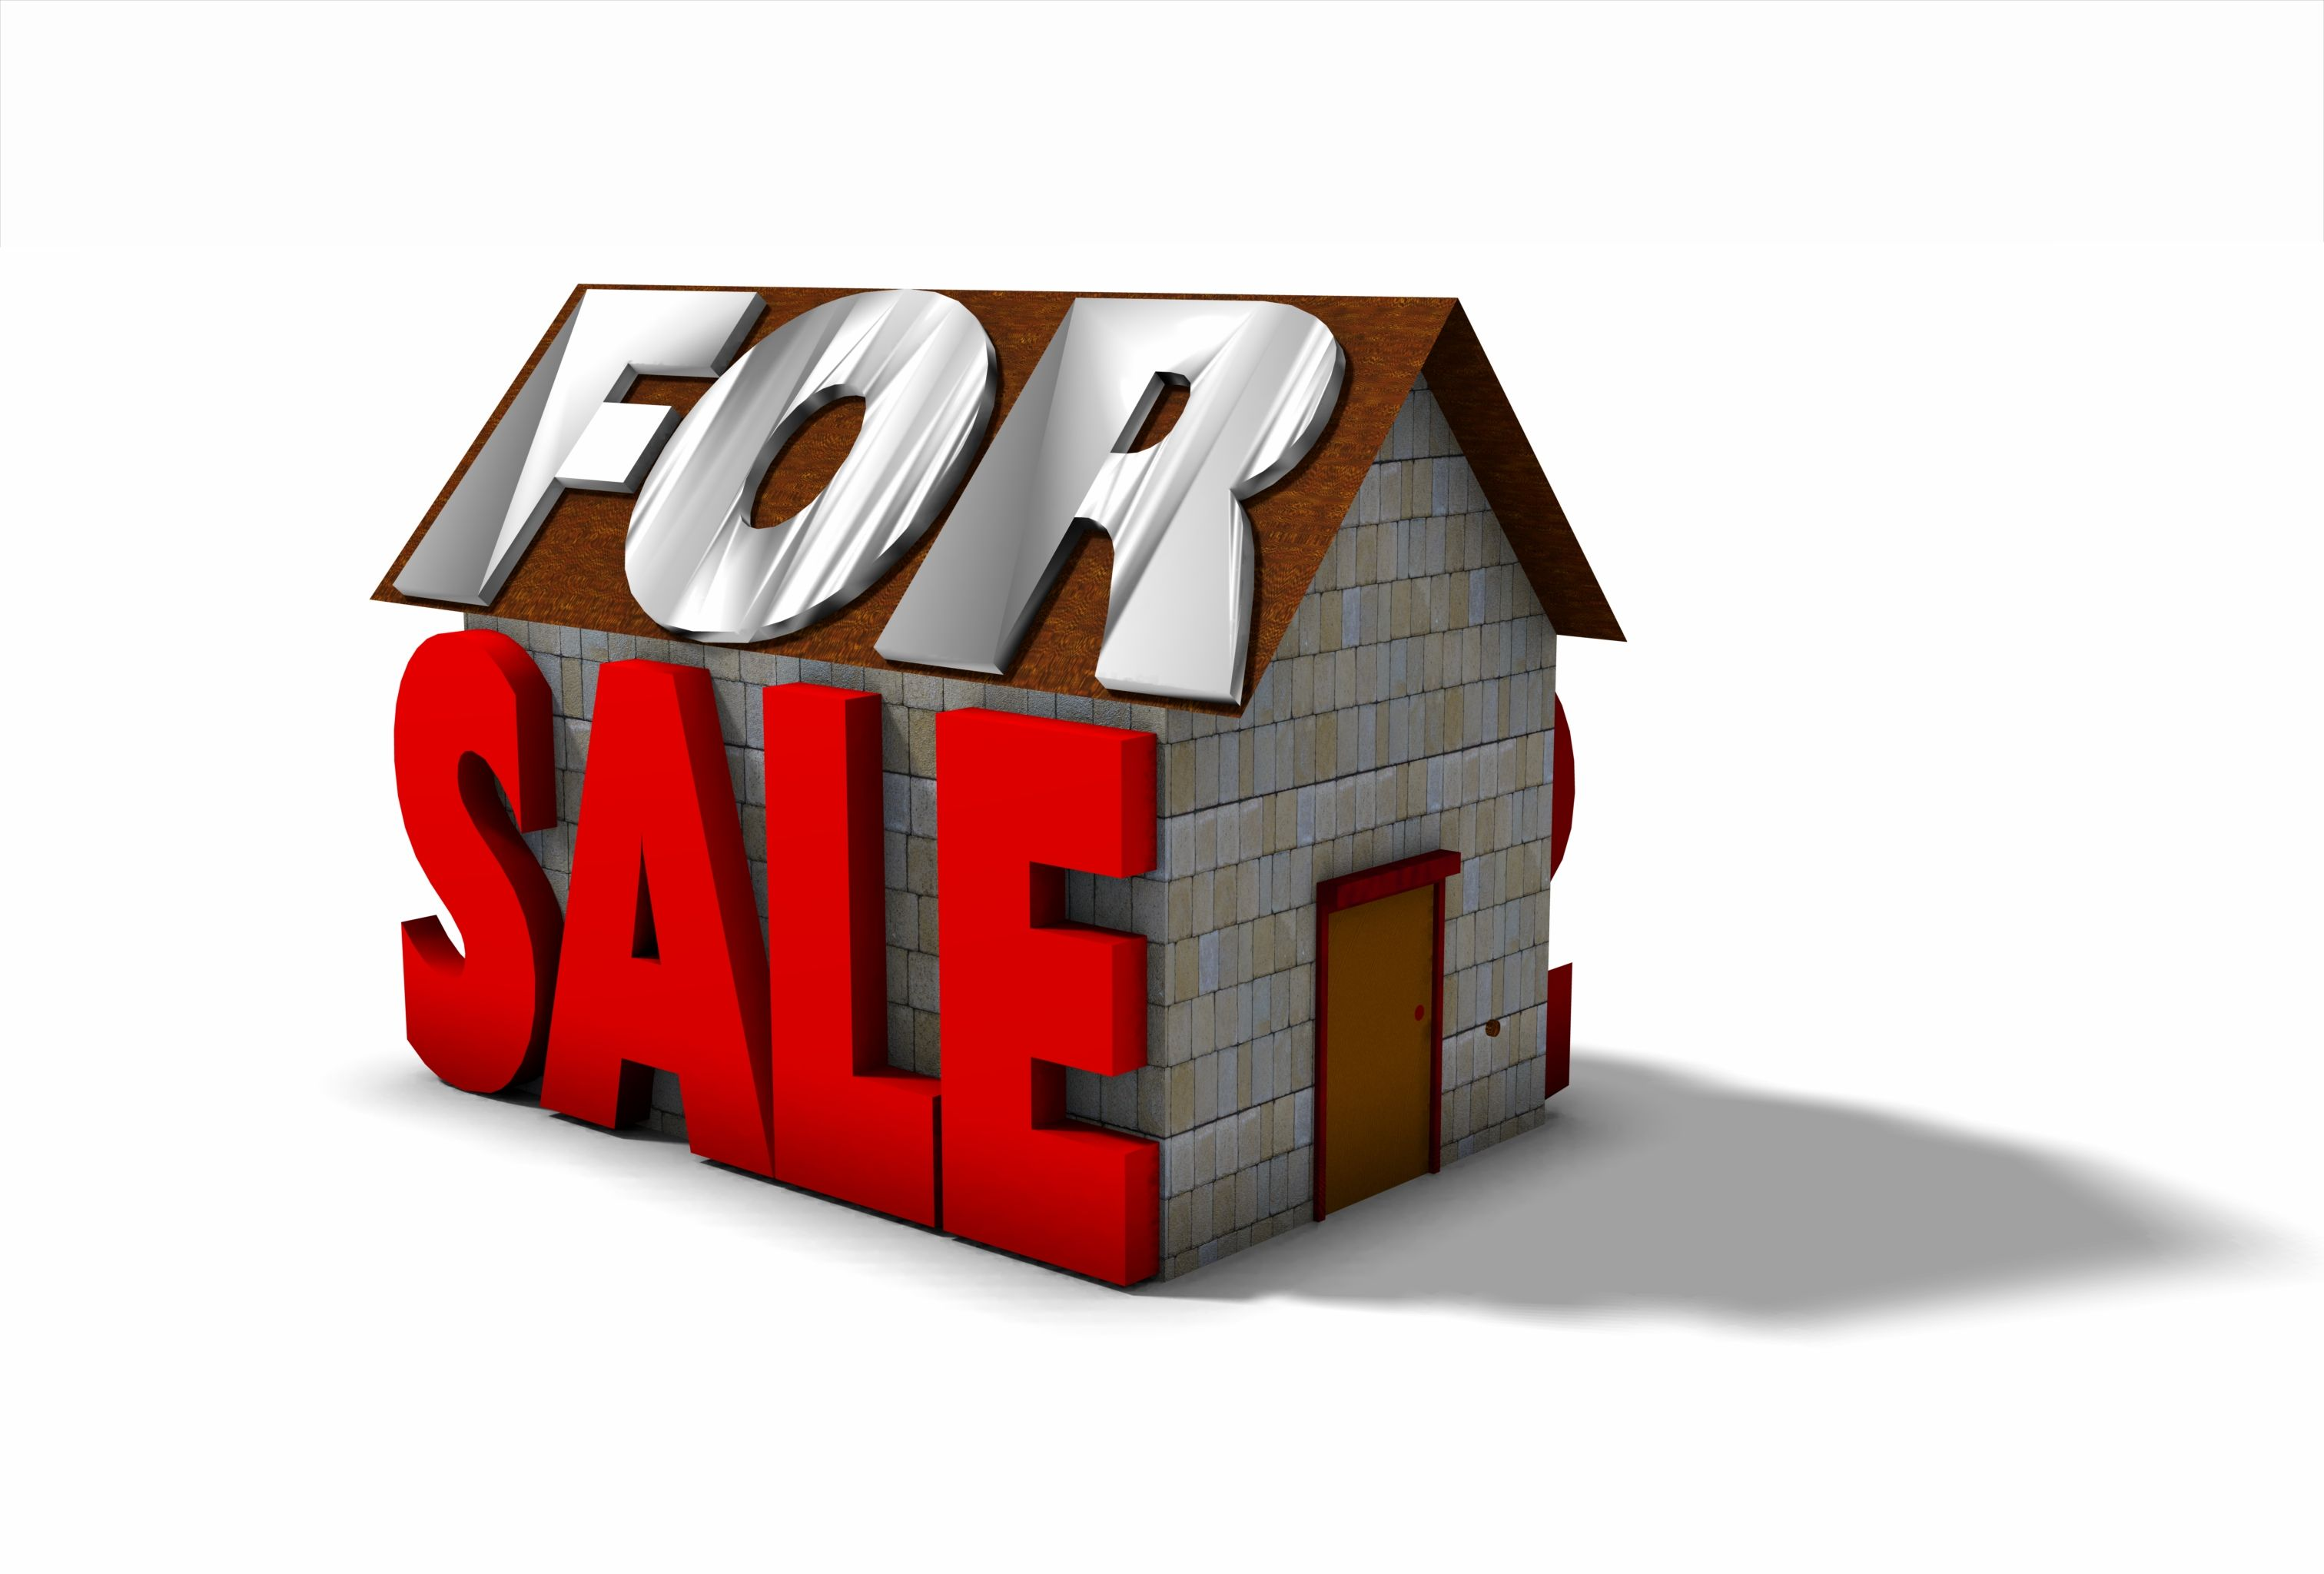 Sell Your House Fast Even With No Equity Many people believe